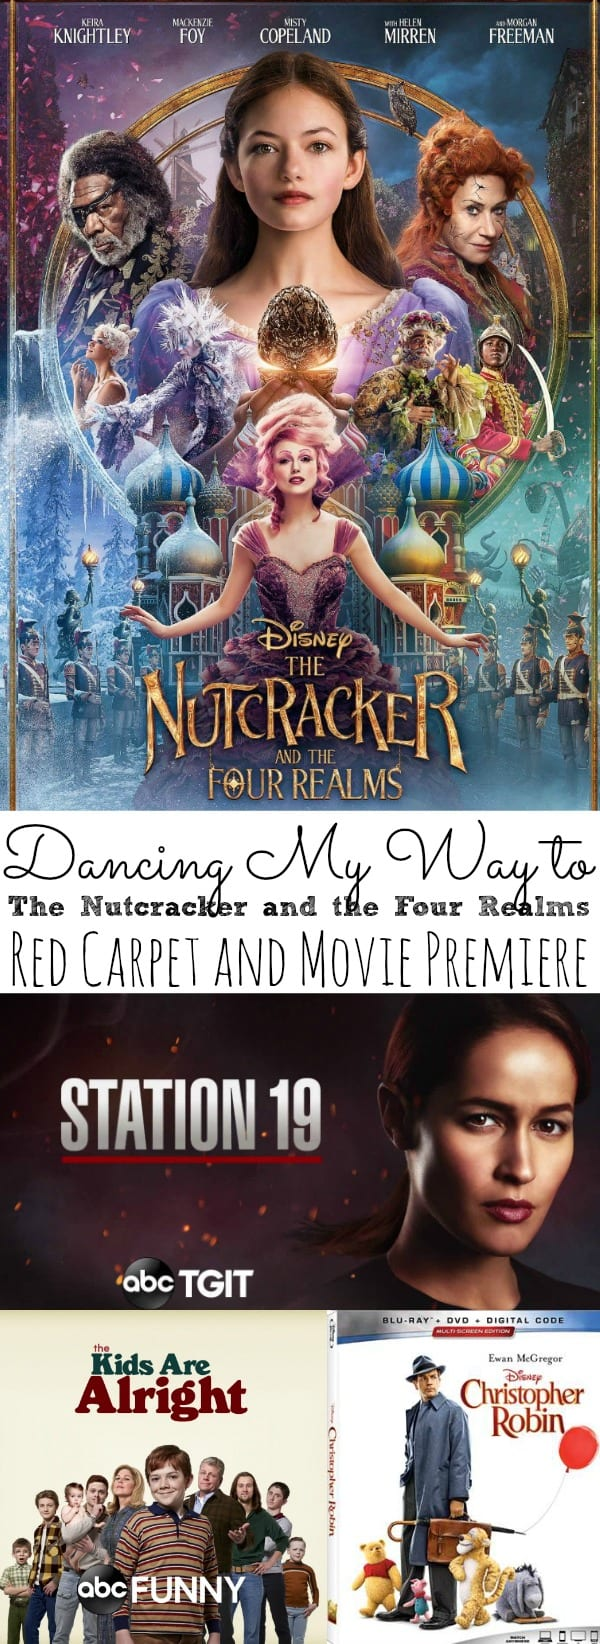 Details of the Nutcracker and the Four Realms Event